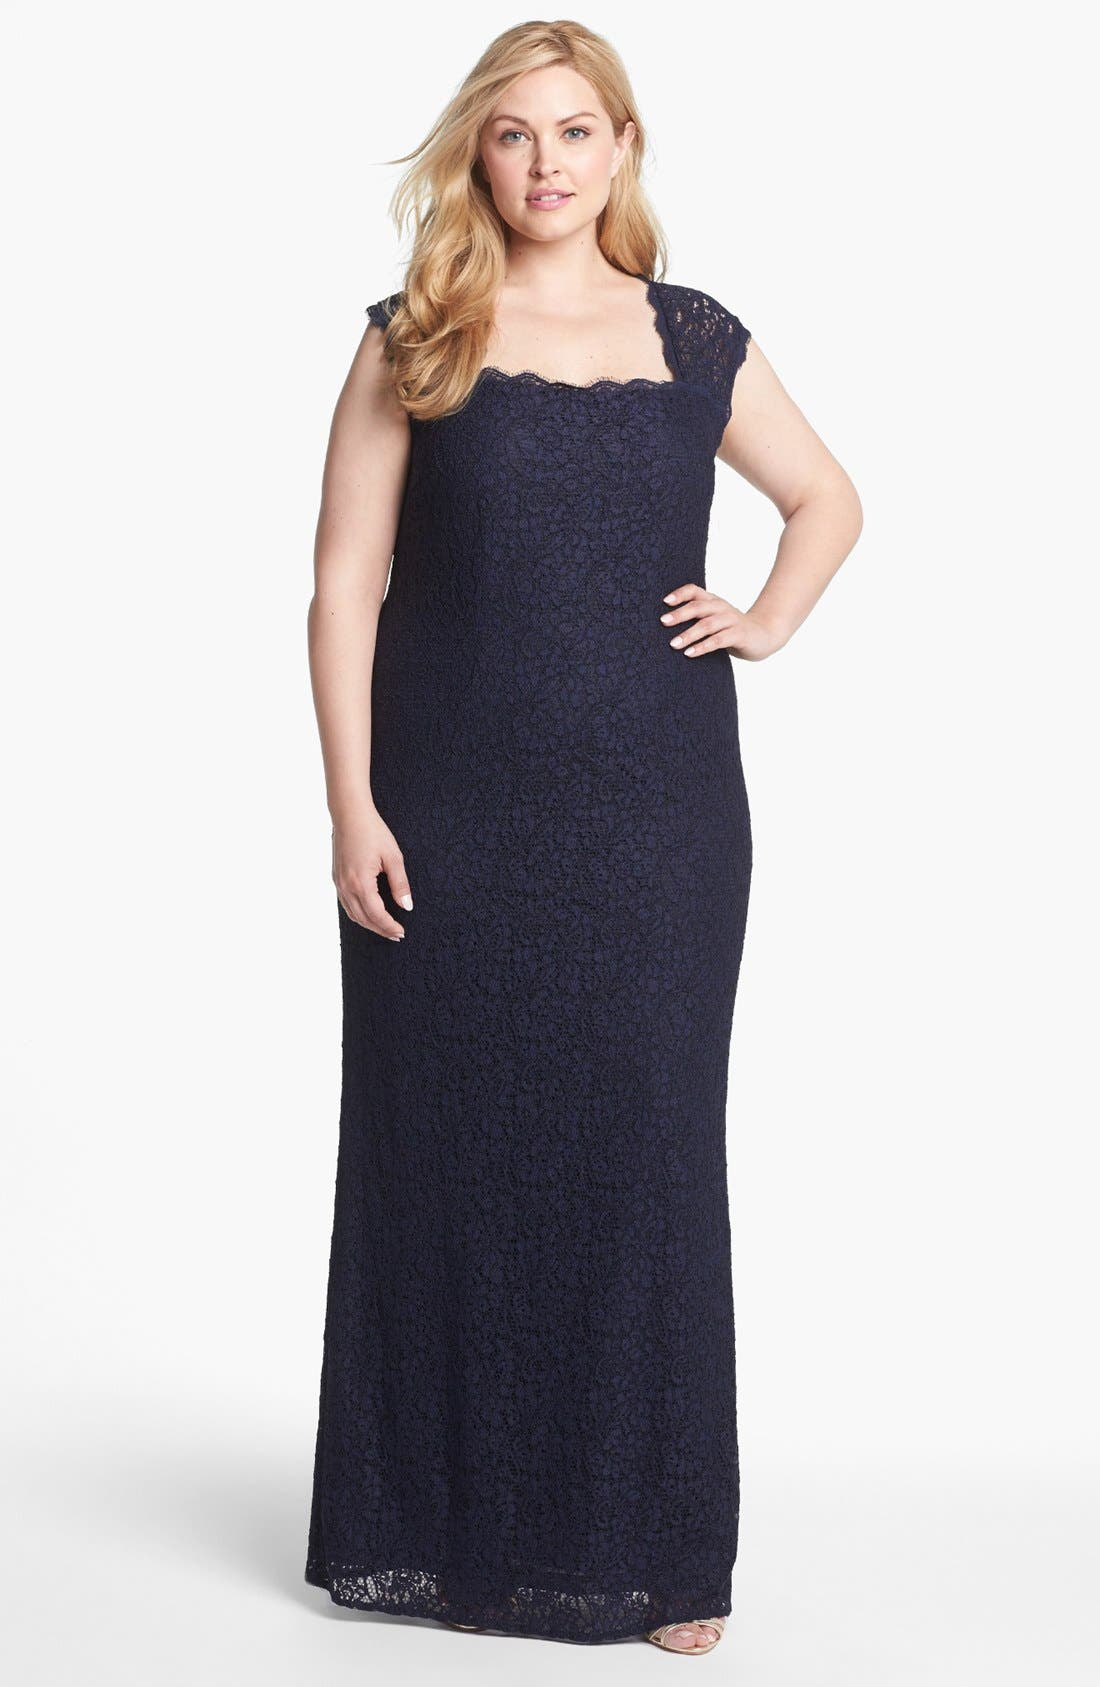 Main Image - Adrianna Papell Back Cutout Lace Column Gown (Plus Size)